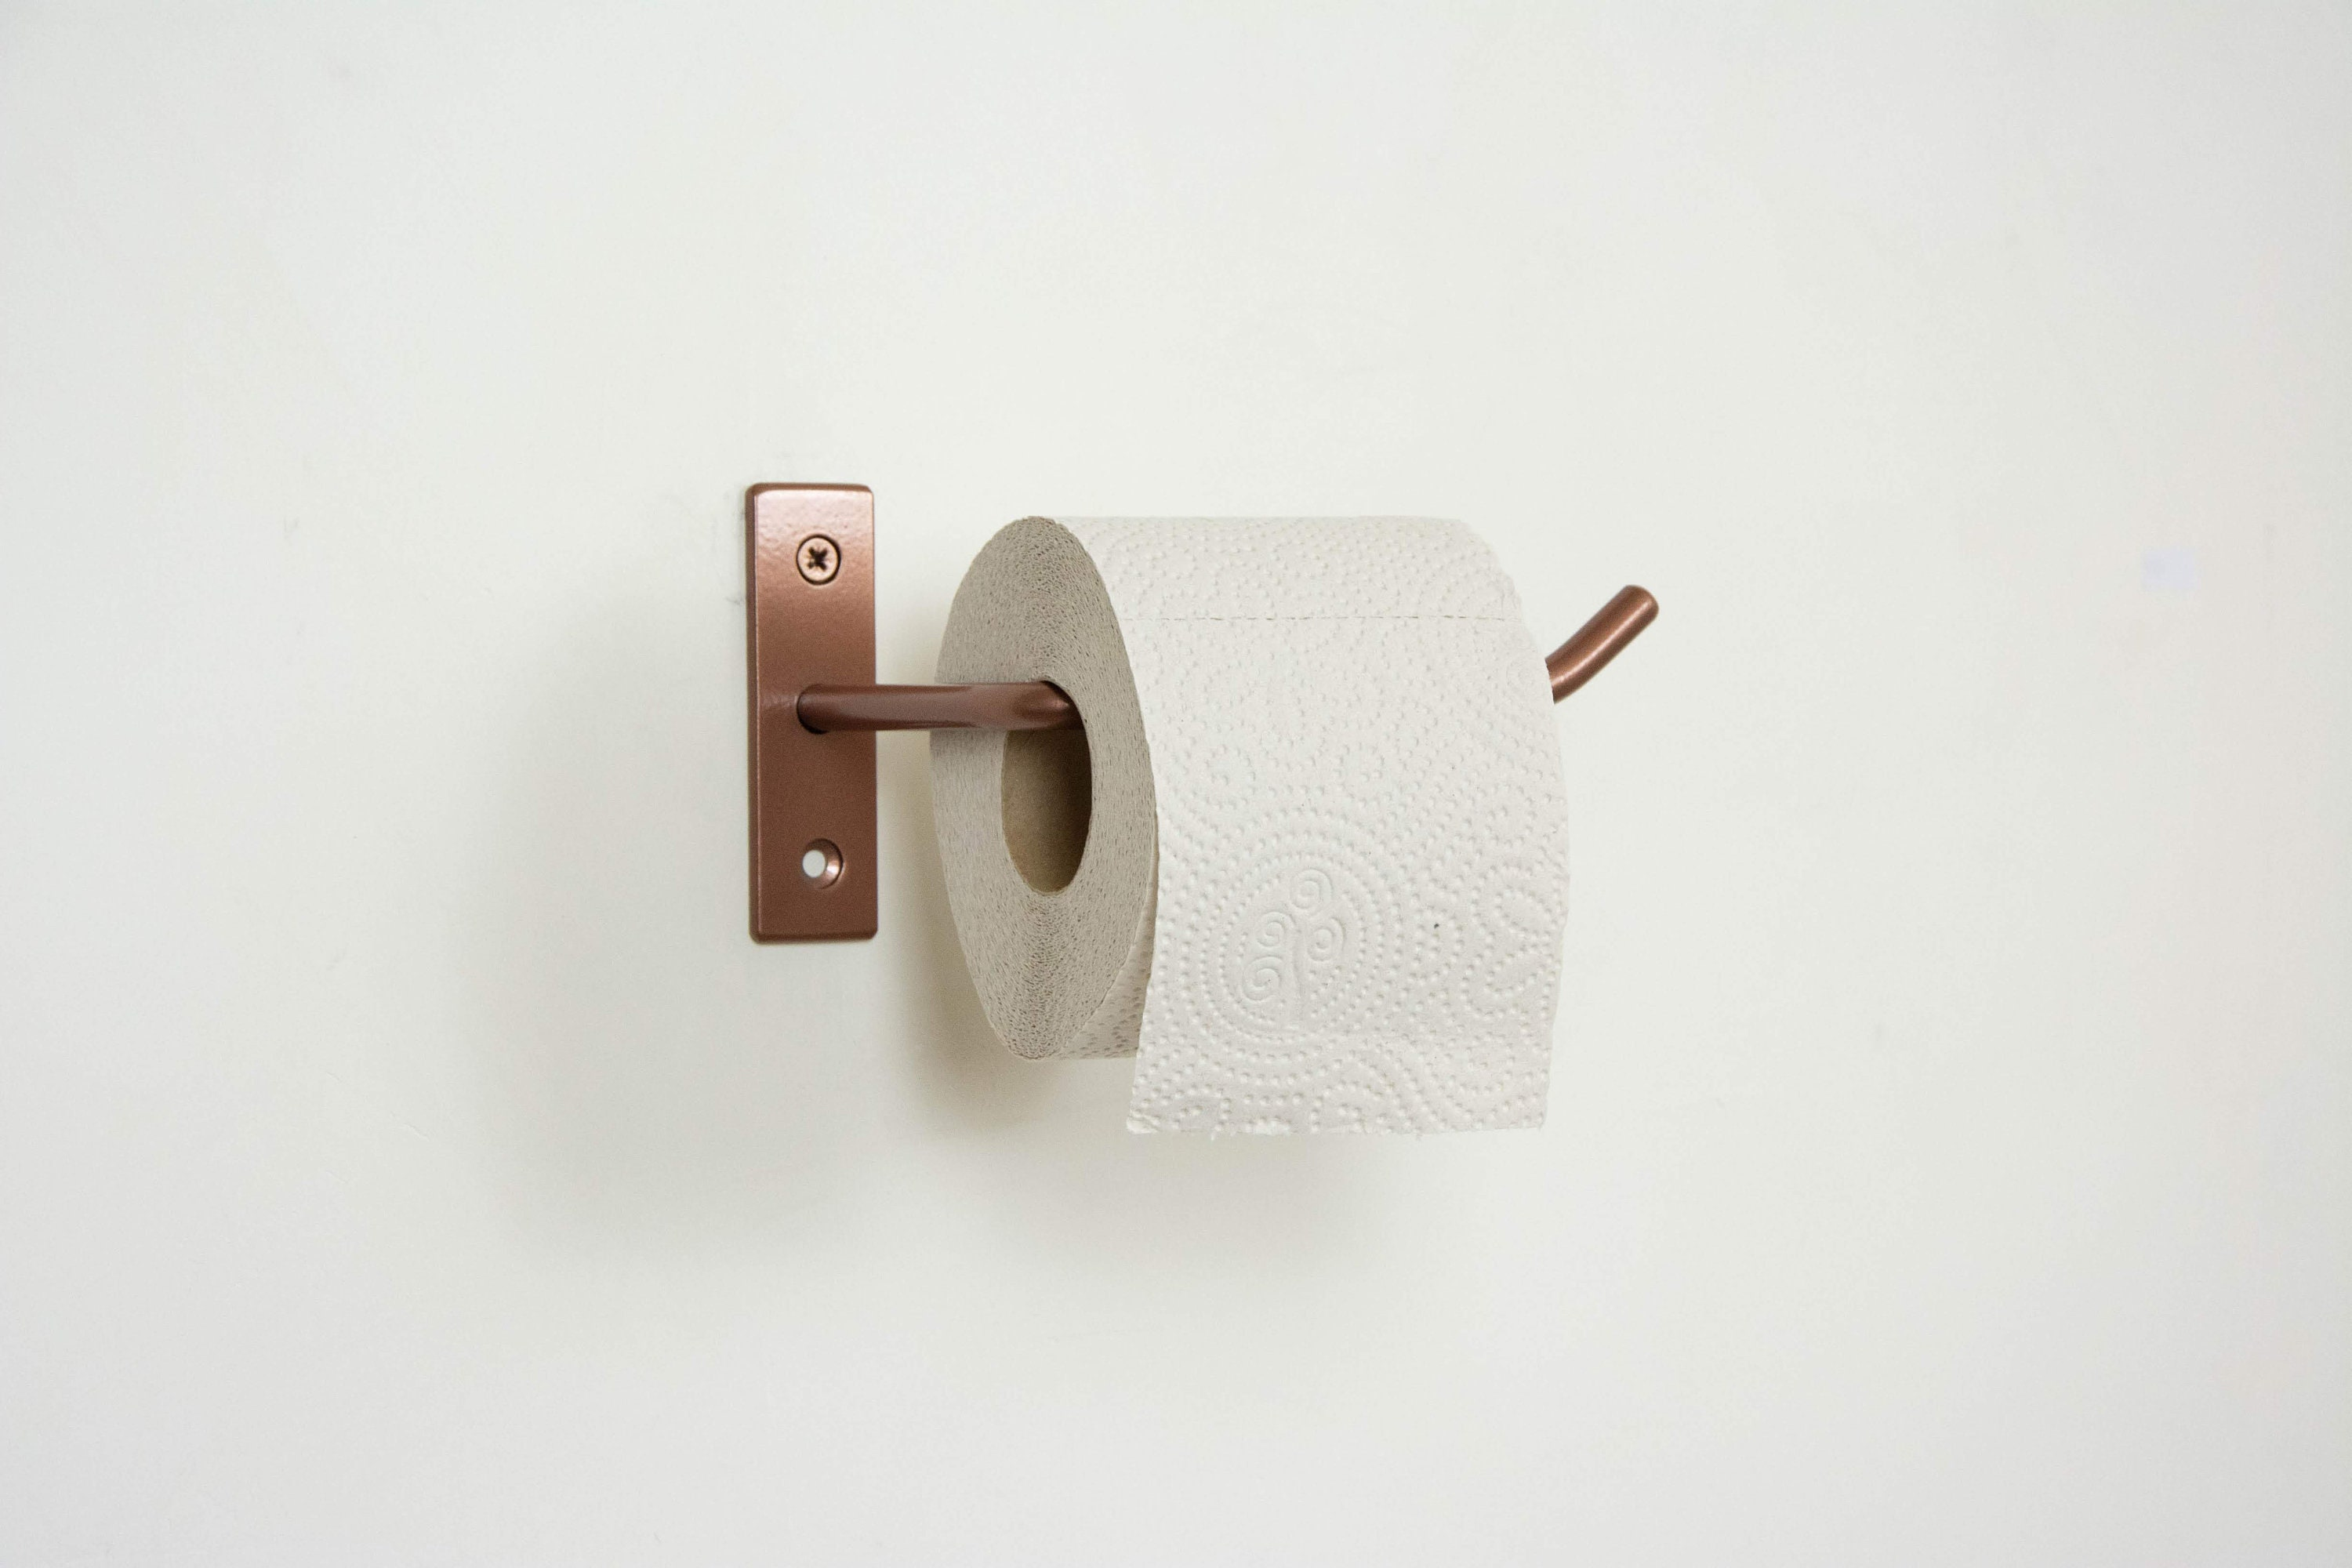 Steel Toilet Paper Holder Powder Coated Tissue Holder Bathroom Accessories Kitchen Towel Holder Paper Roll Holder Hardware Included